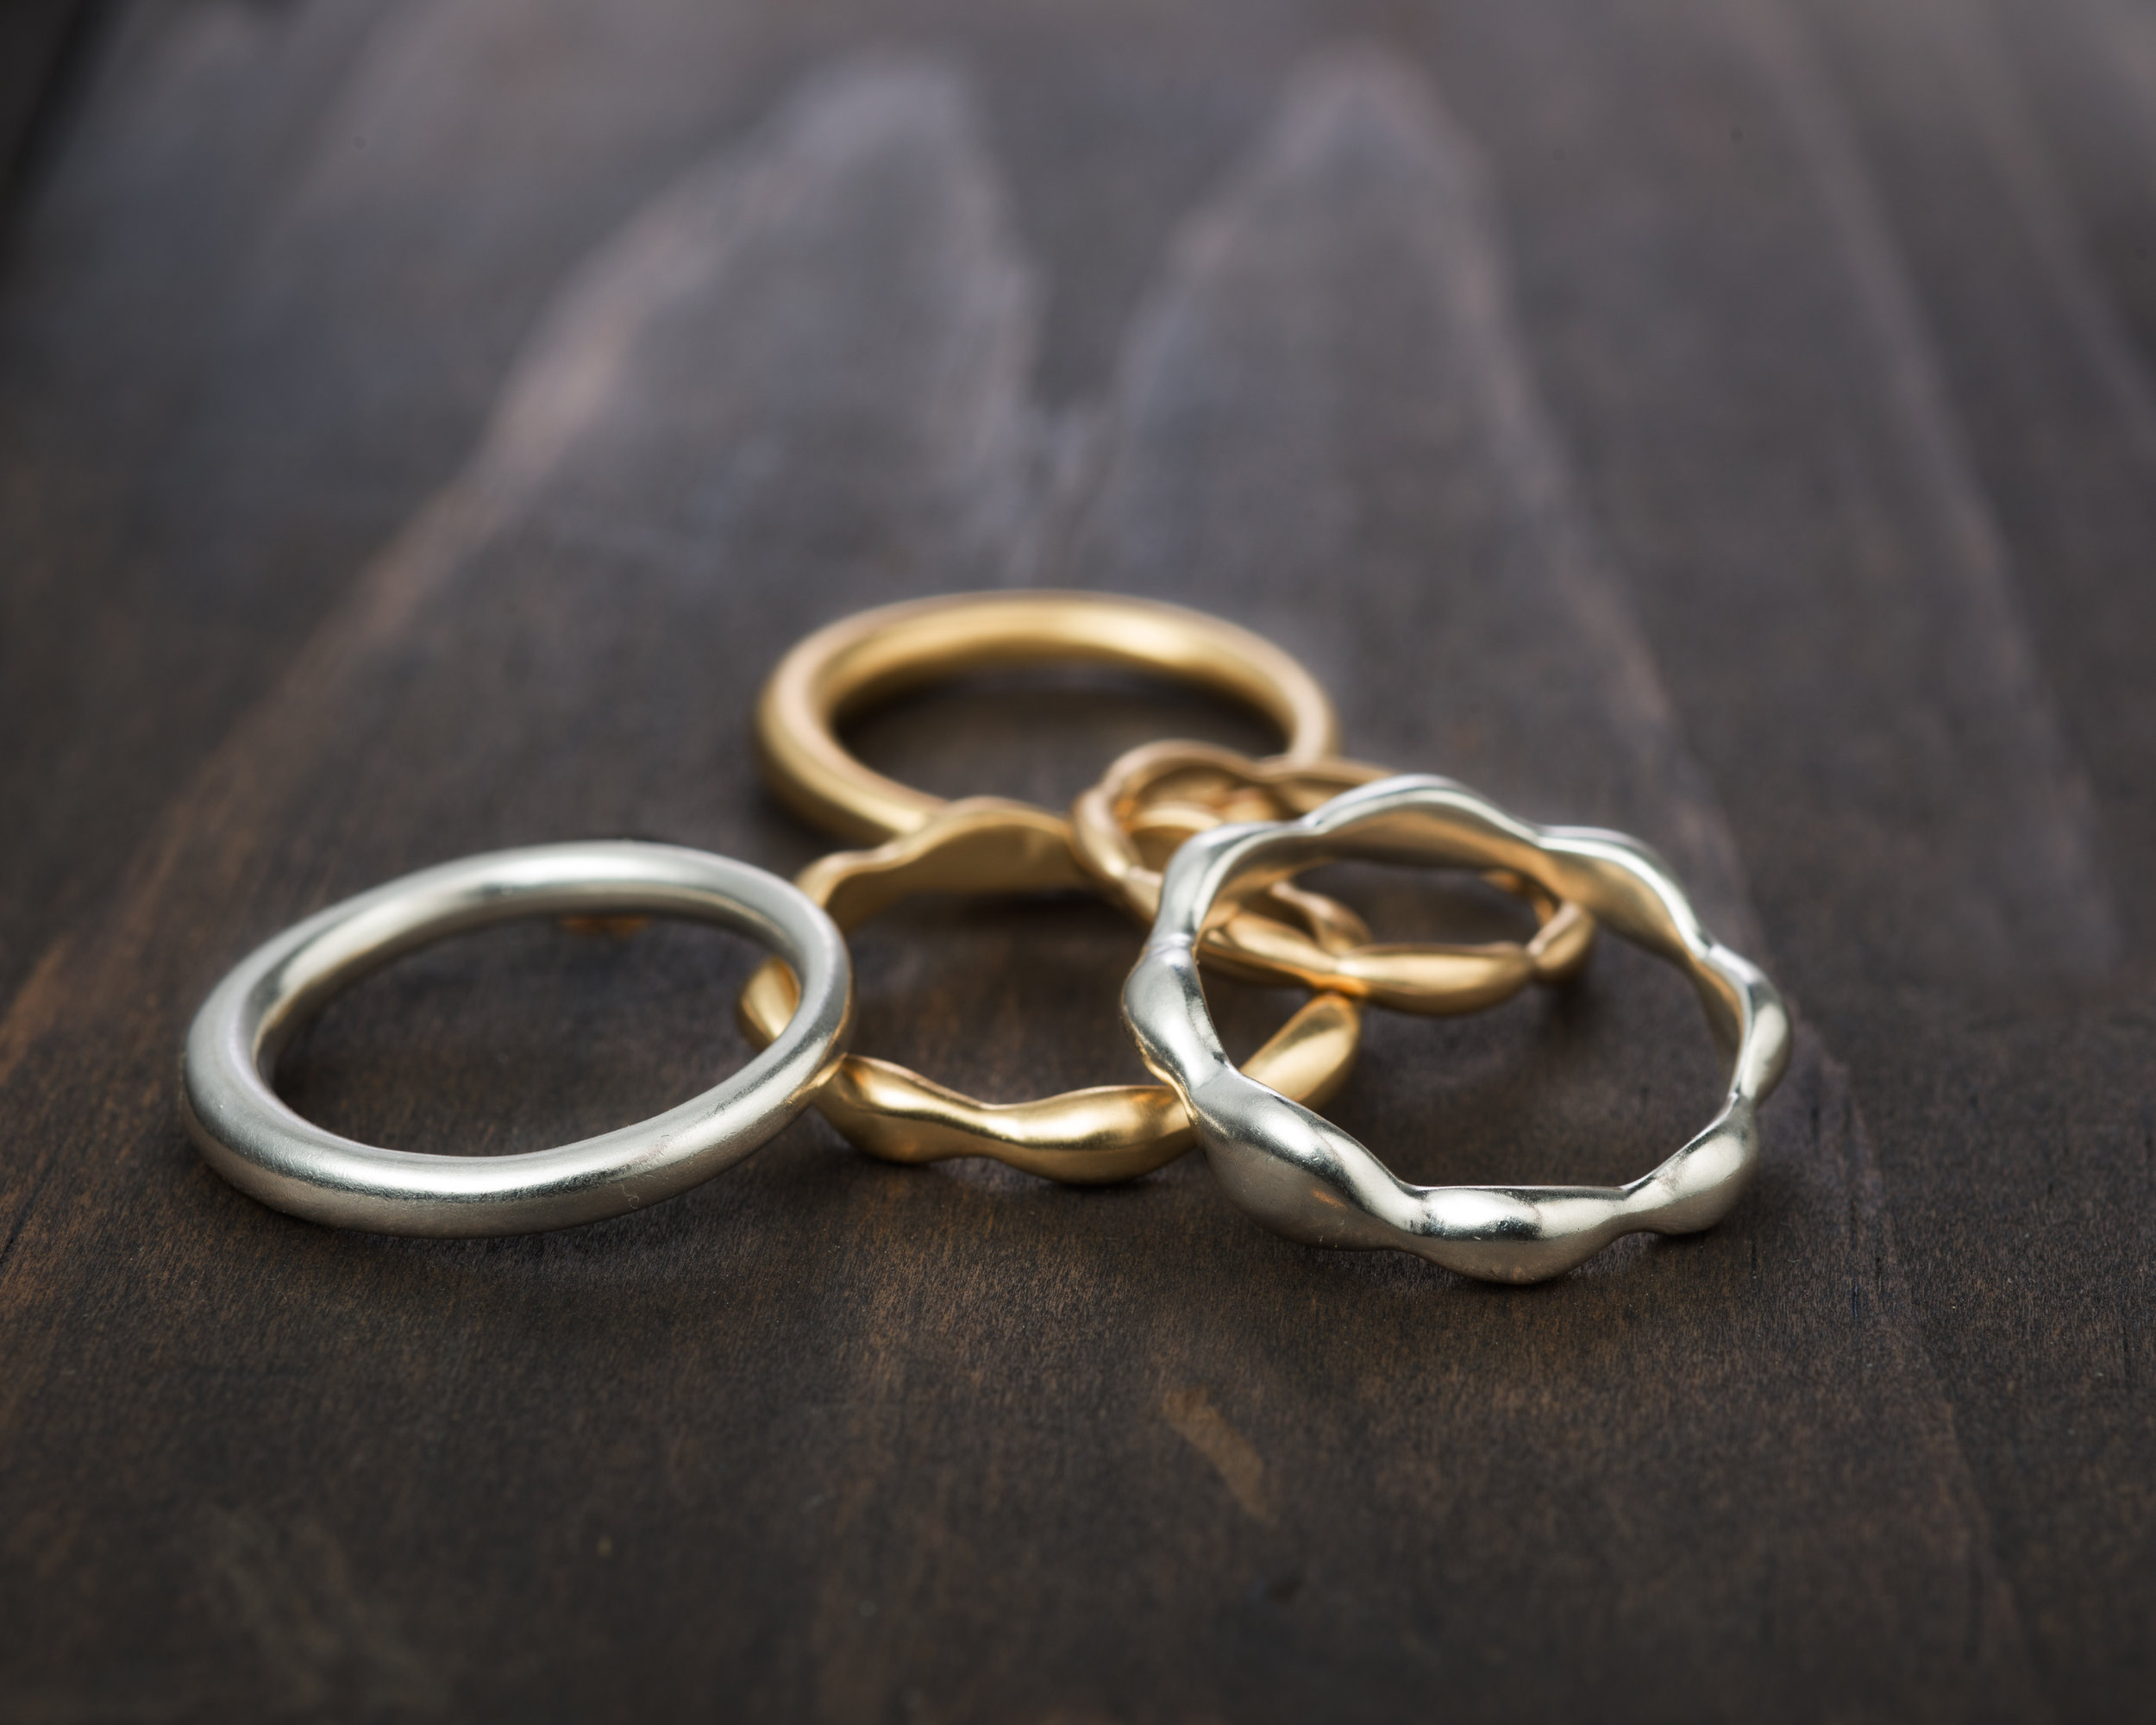 Made to order wedding bands.